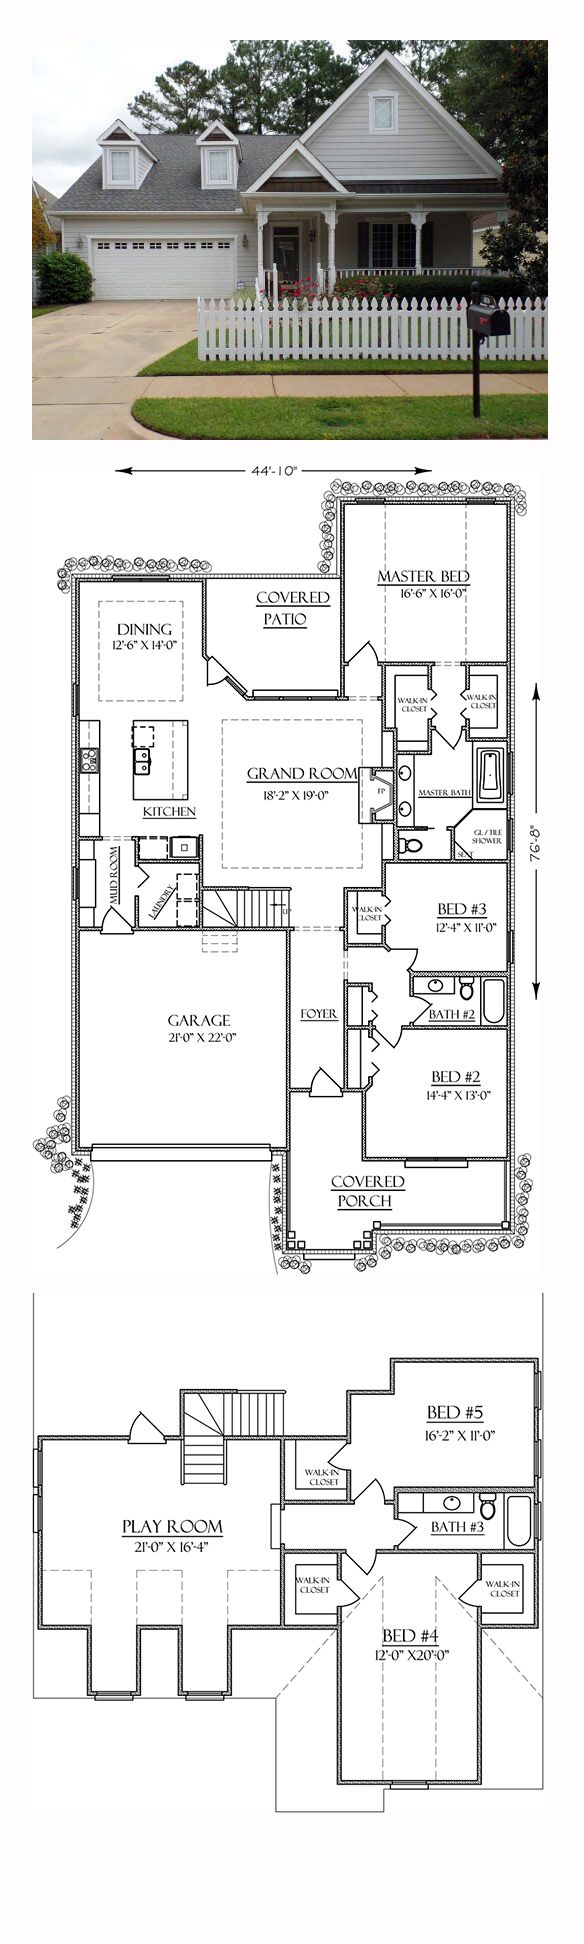 5 bedroom 3 bathroom house plans - Bungalow Country Traditional House Plan 74756 New House Plans5 Bedroom